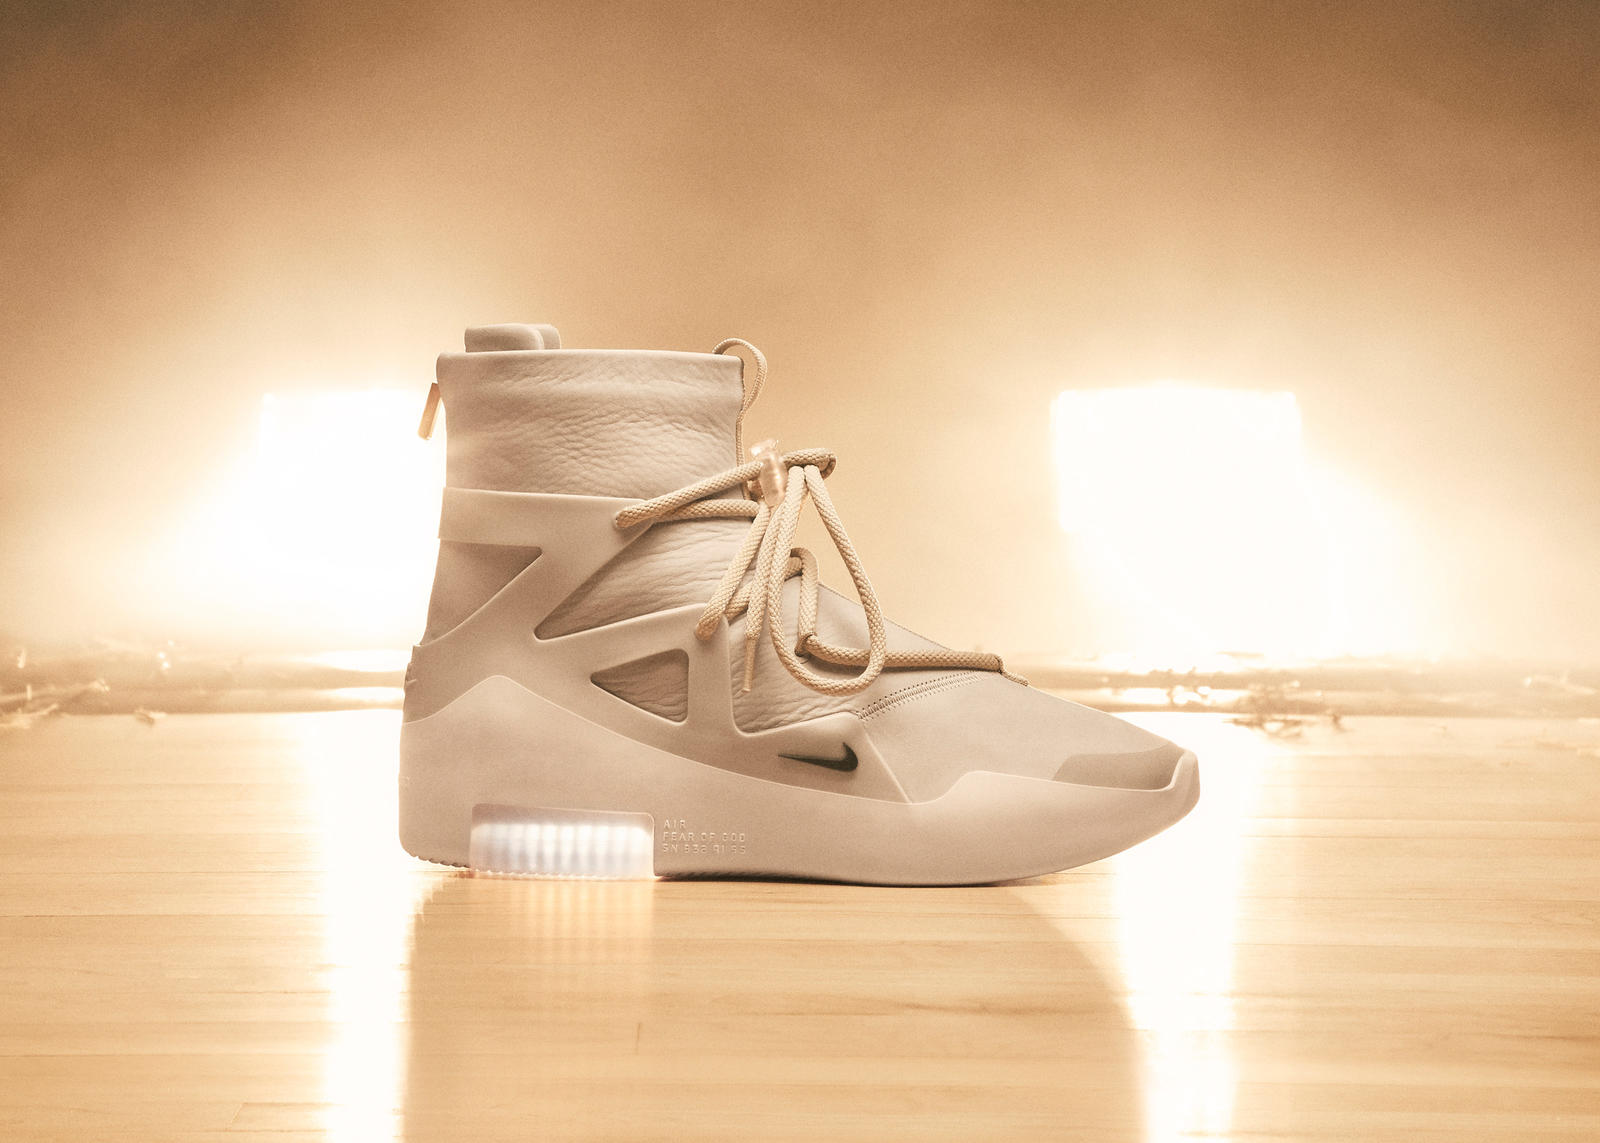 Unboxing The Nike Air Fear Of God 1